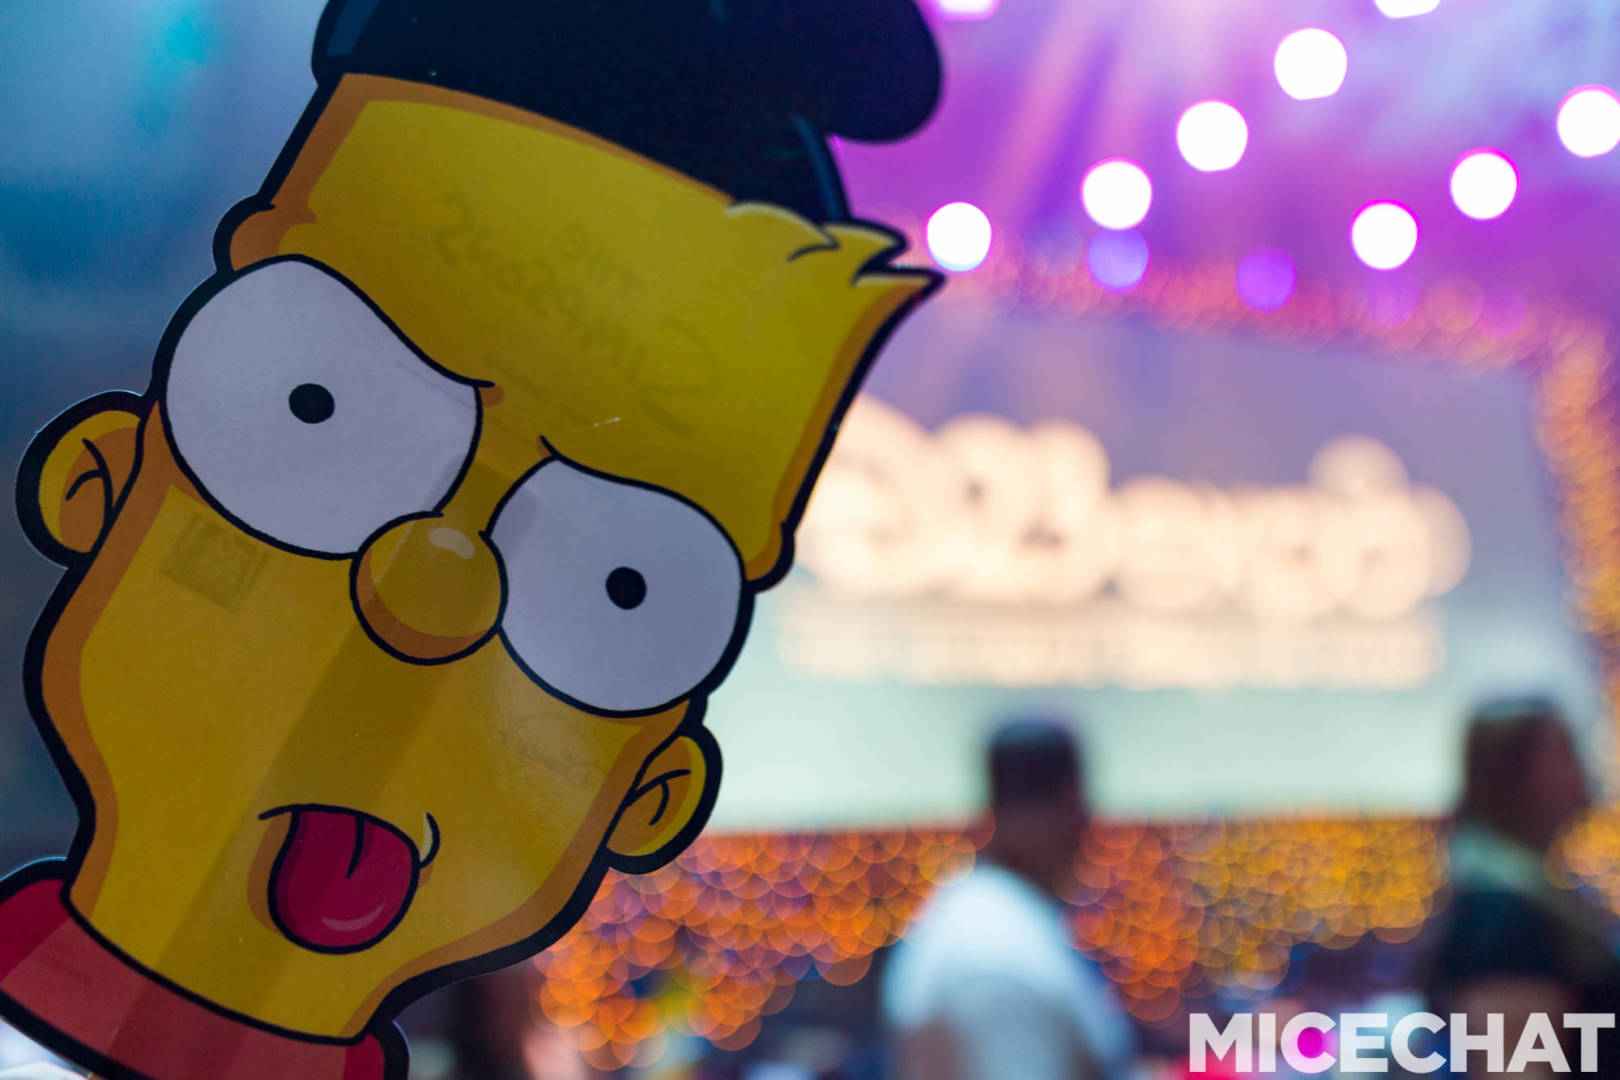 The Simpsons Awkwardly Join The Disney Family At The D23 Expo